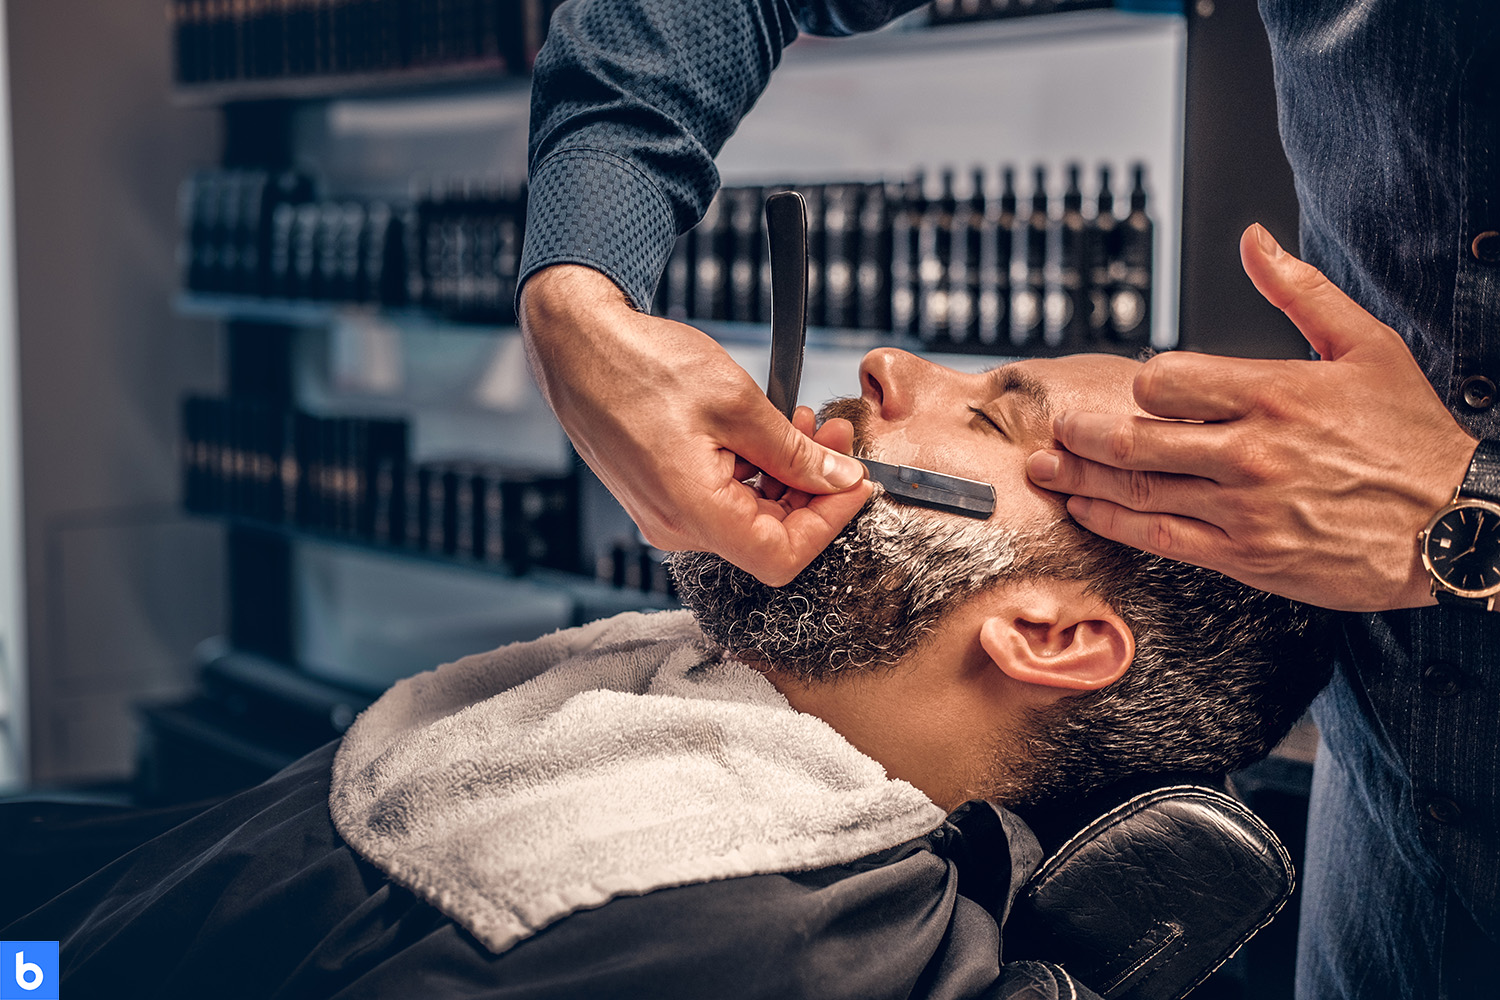 This is the cover for our Best Straight Razor article. It features a man sitting in a barber shop being shaved with a straight razor. The background looks like a barber shop, but out of focus in the image.